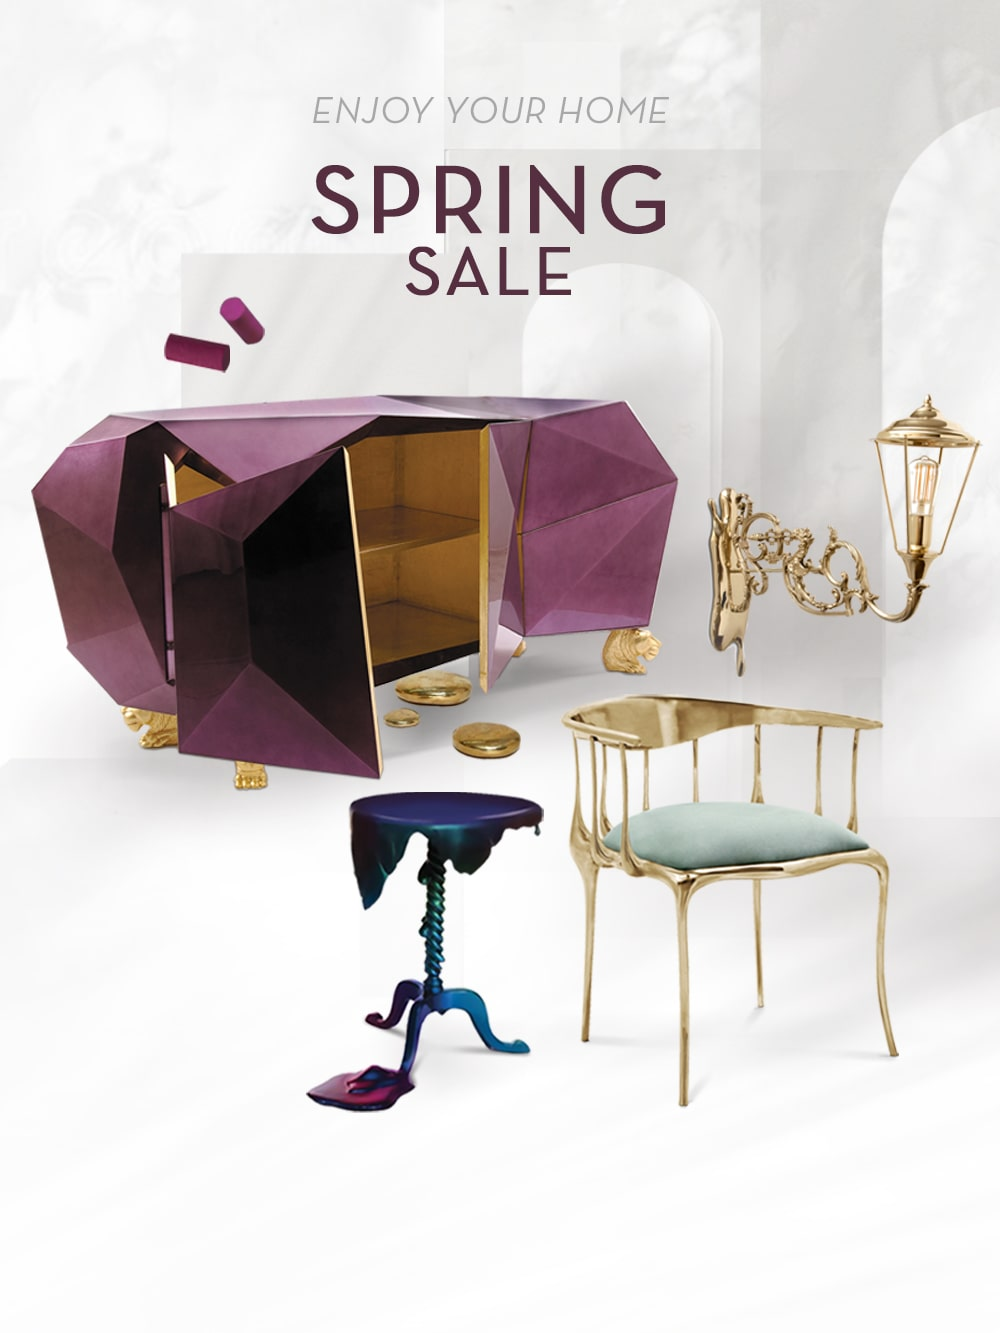 SPRING SALE - Enjoy Your Home